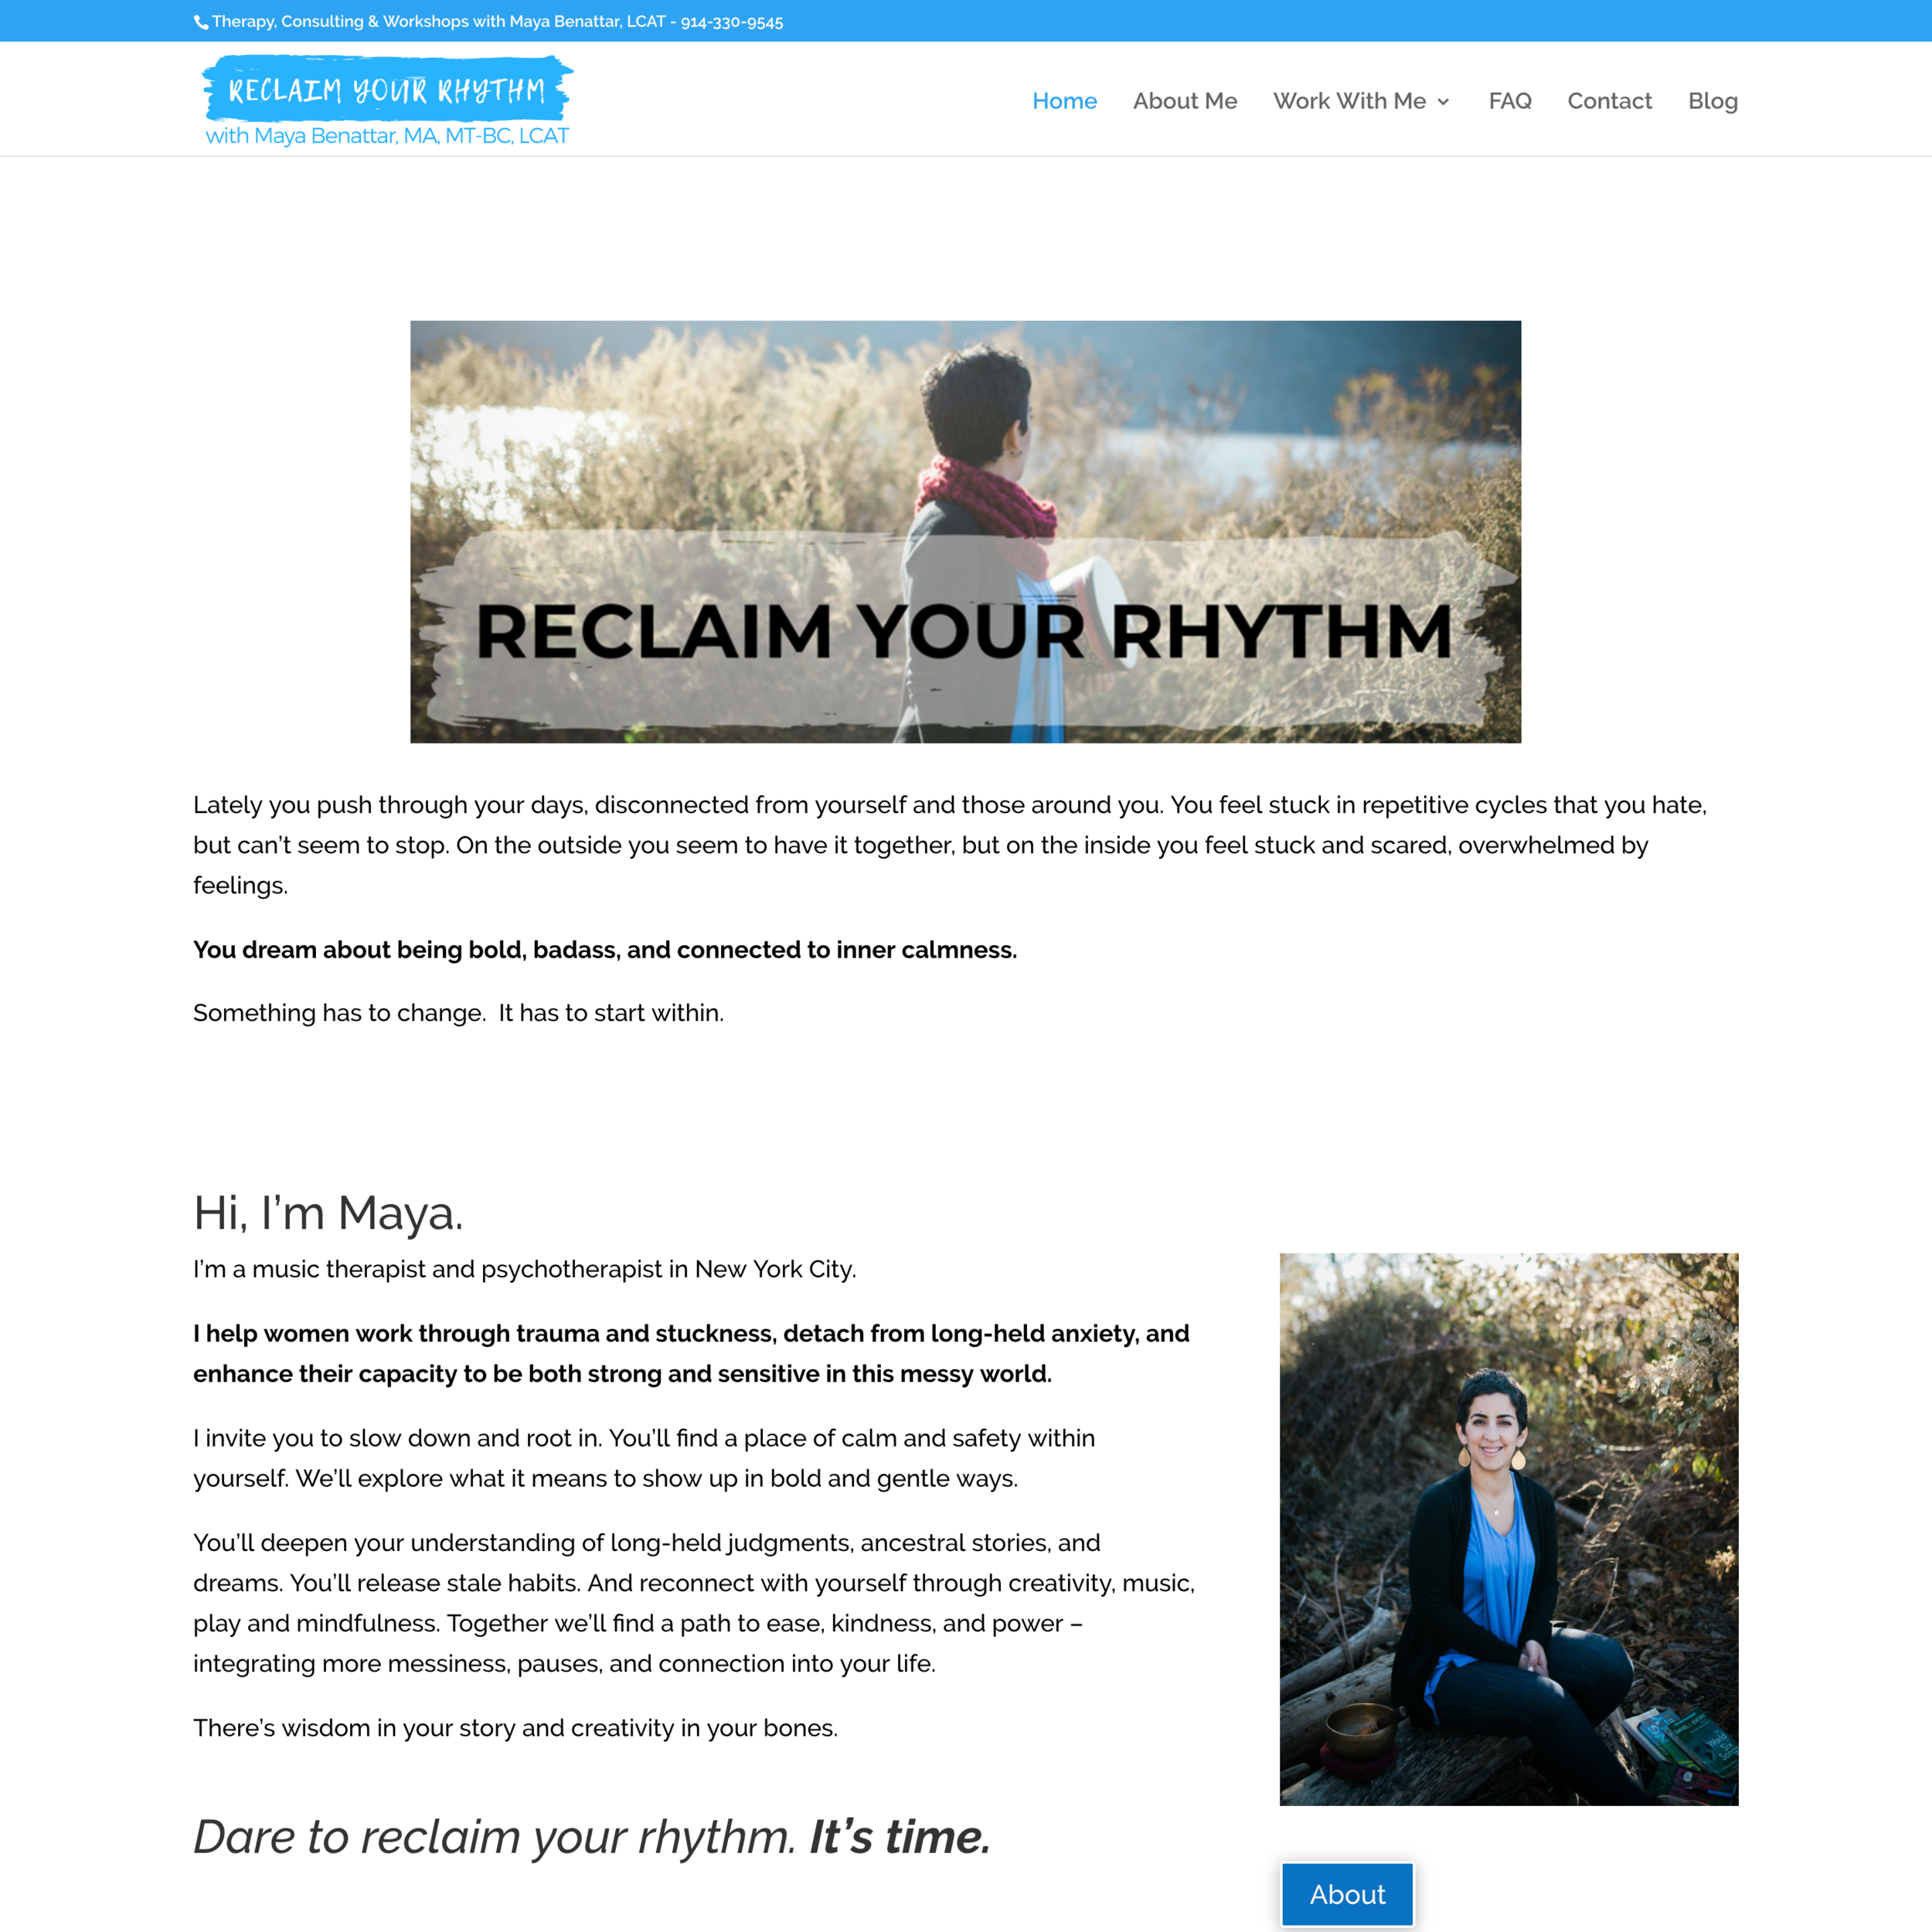 MAYA BENATTAR | RECLAIM YOUR RHYTHM   Maya is a music therapist and psychotherapist in New York City who helps women work through trauma and stuckness, detach from long-held anxiety, and enhance their capacity to be both strong and sensitive in this messy world.